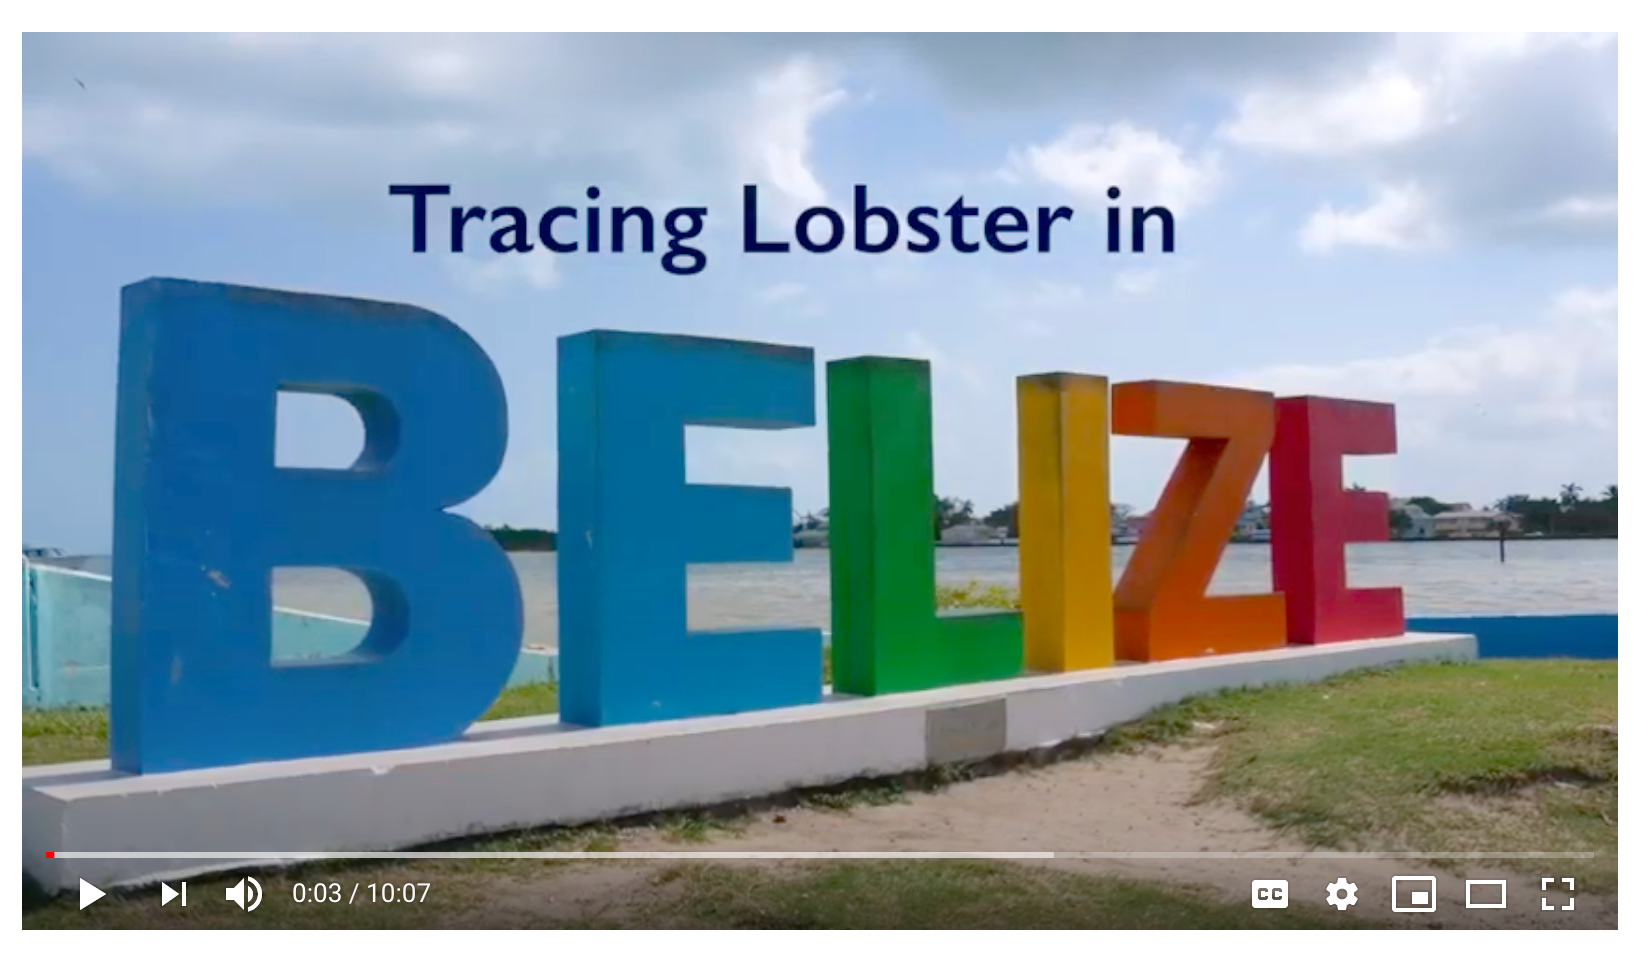 Tracing Lobster in Belize